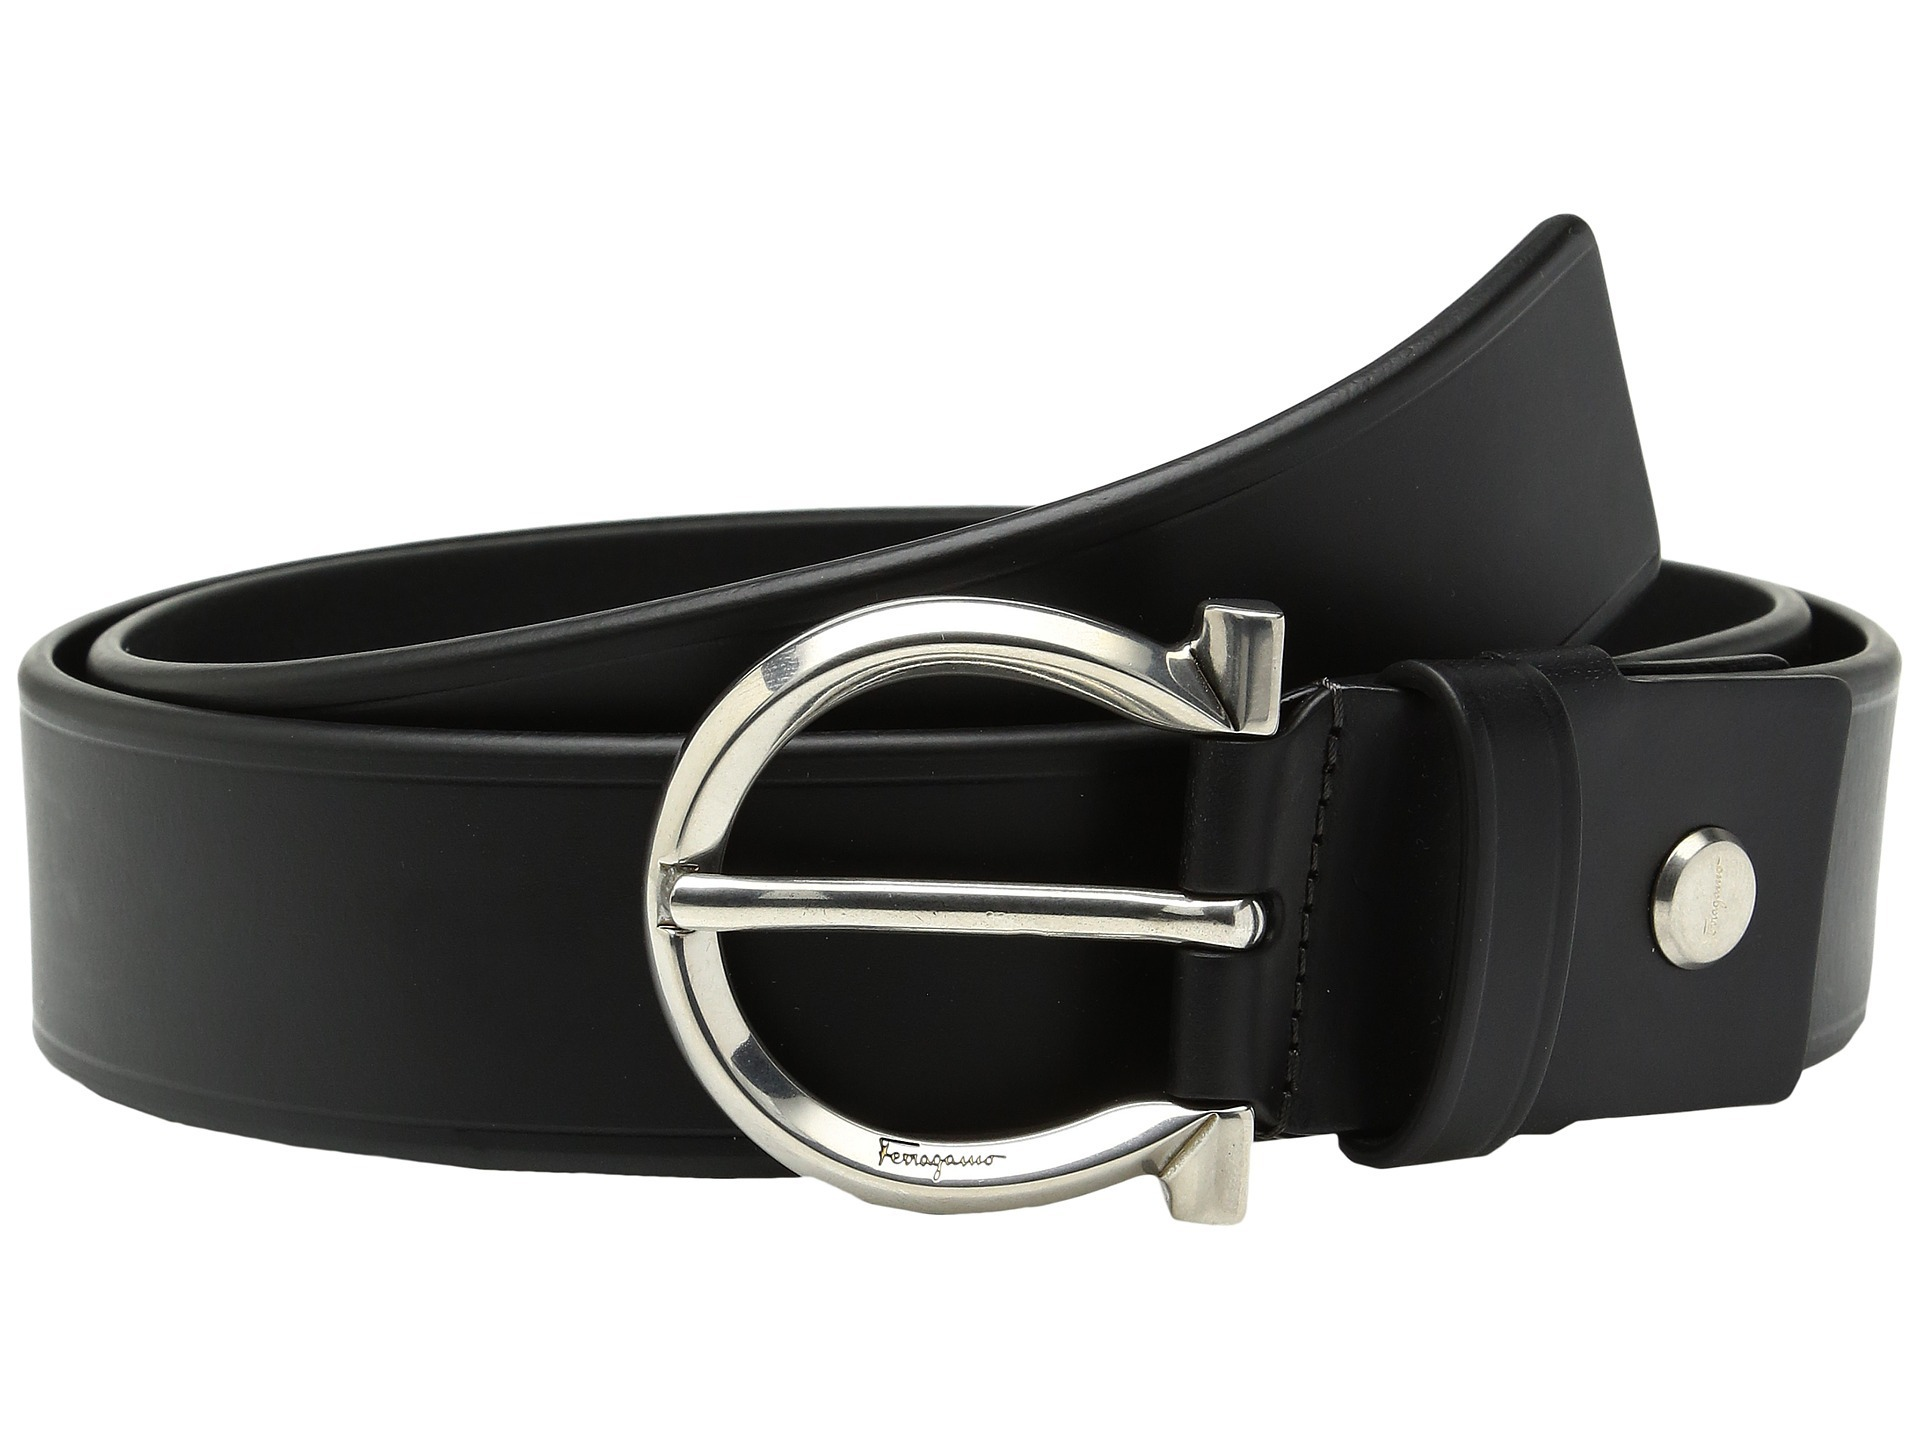 関税送料込み★Salvatore Ferragamo Adjustable Belt - 6 ベルト